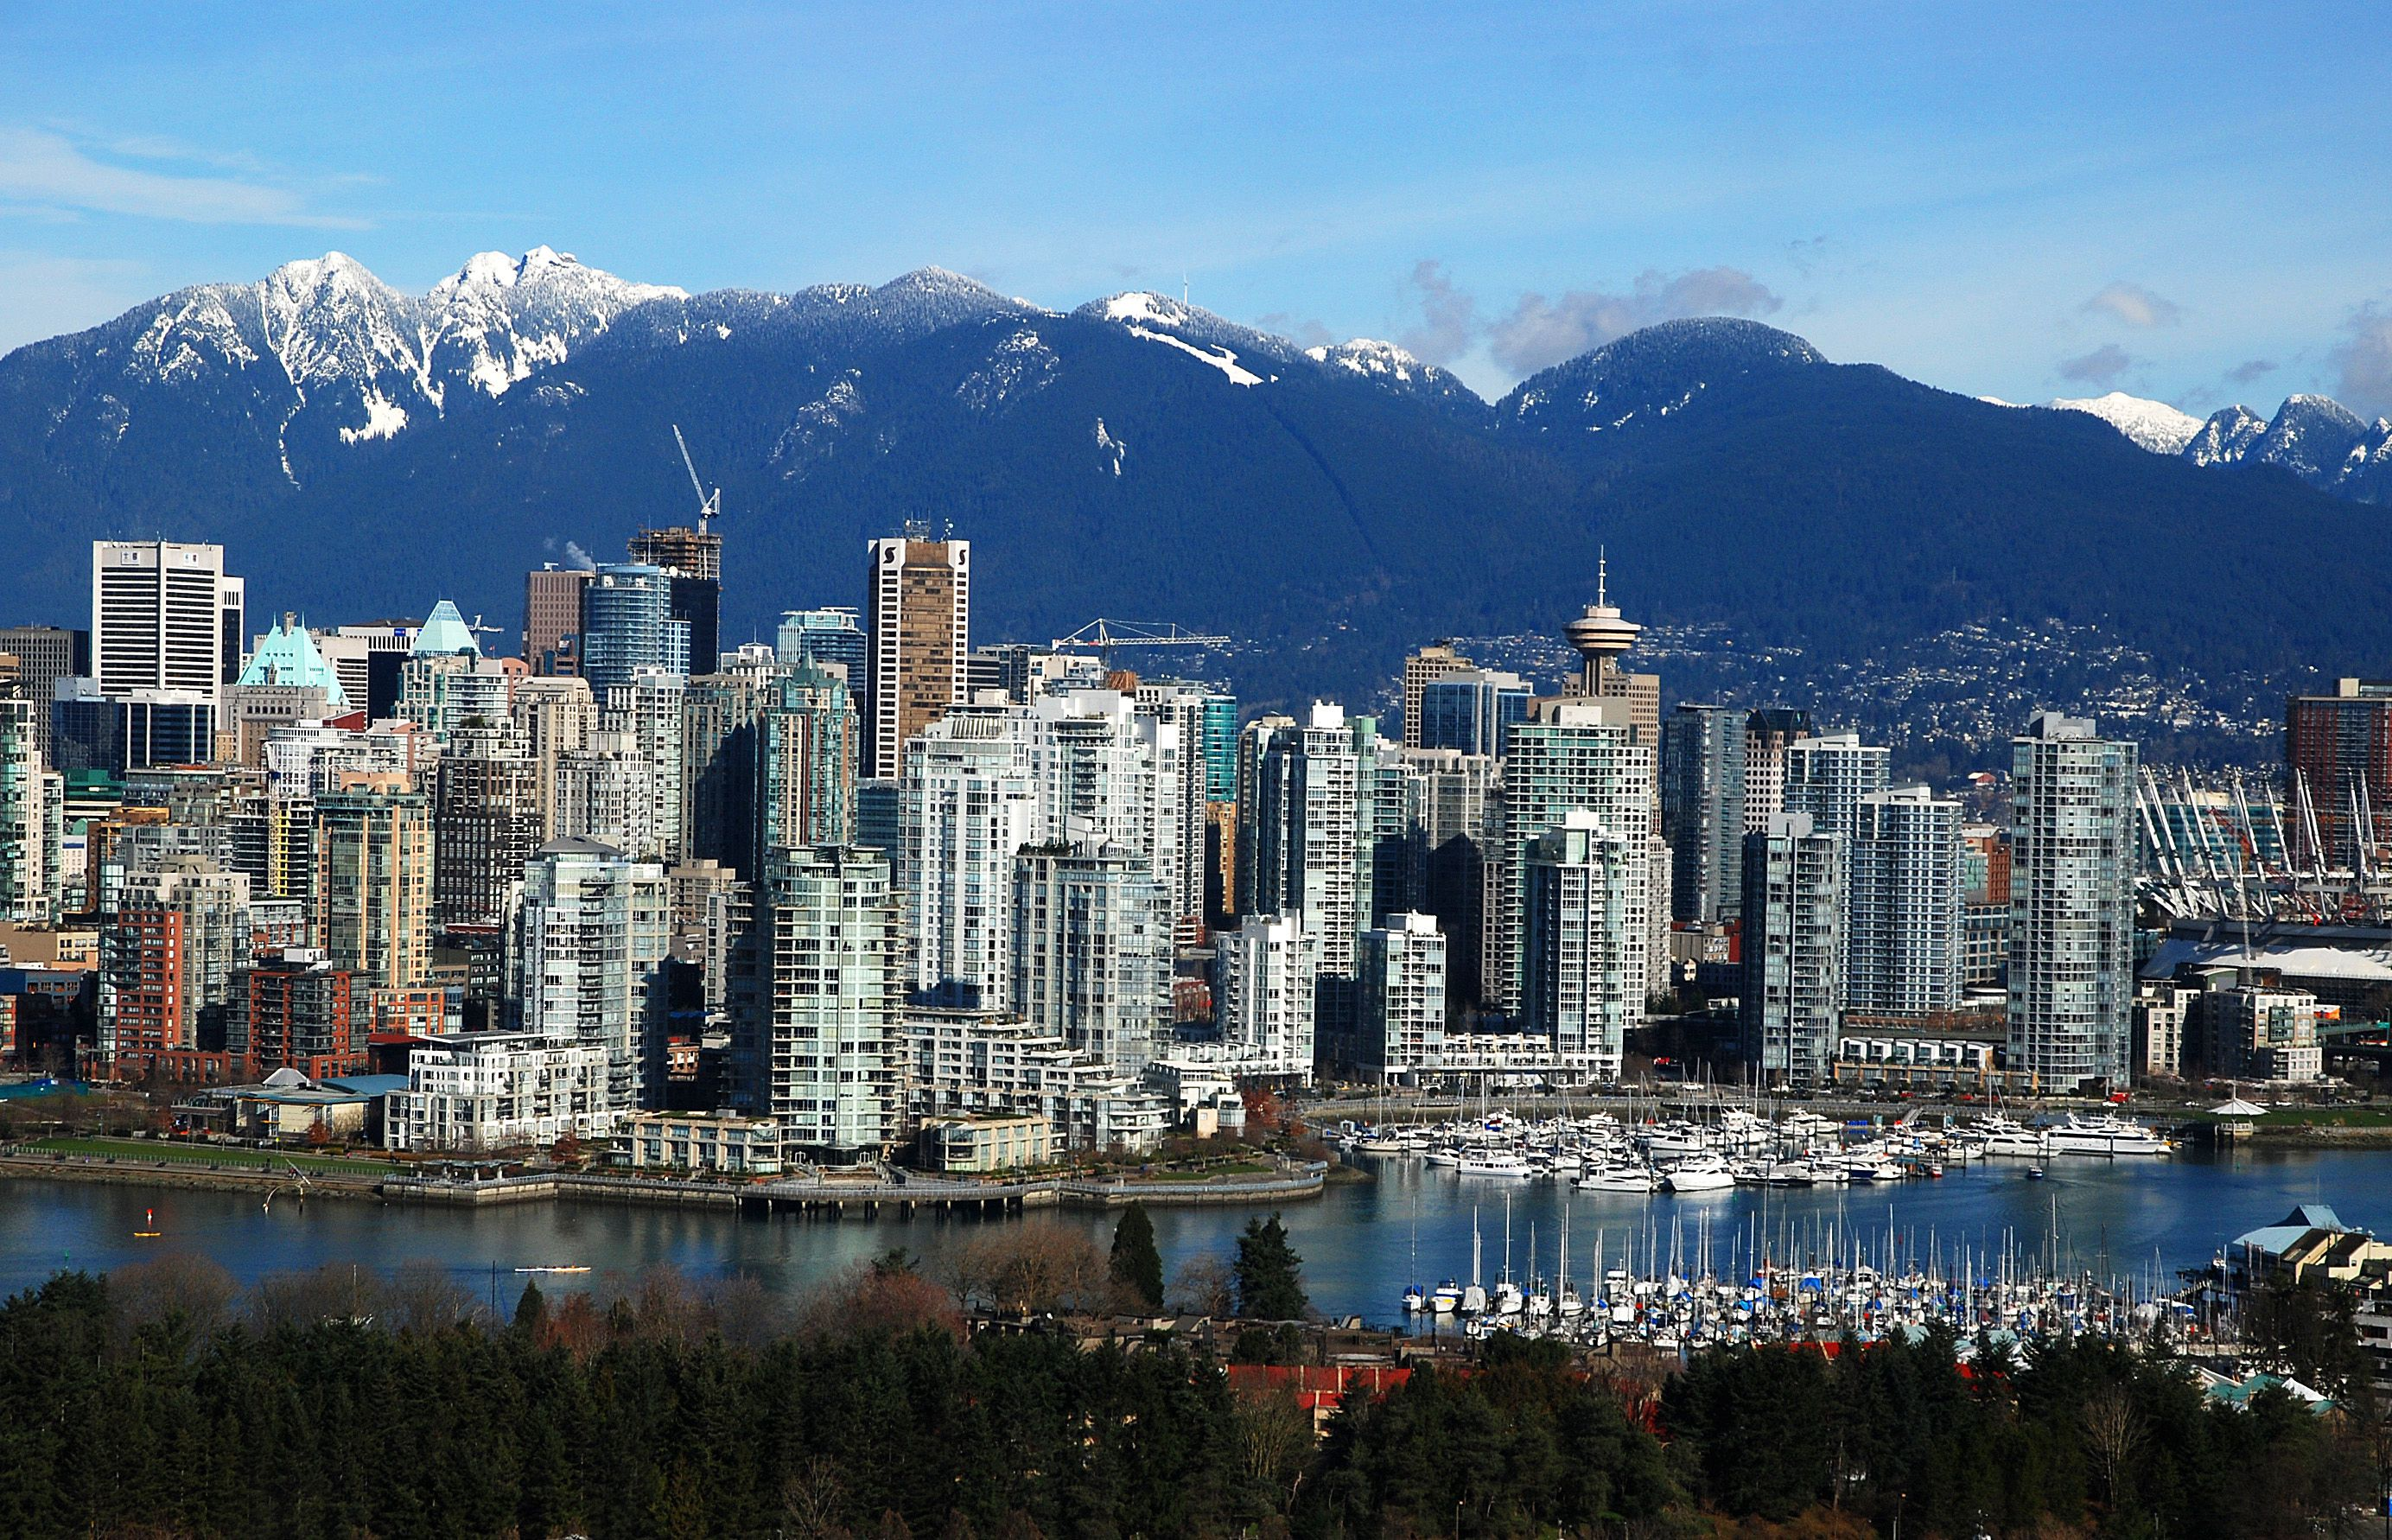 vancouver middle eastern singles Holidays to vancouver available now from explore worldwide book your next adventure or activity holiday online today.